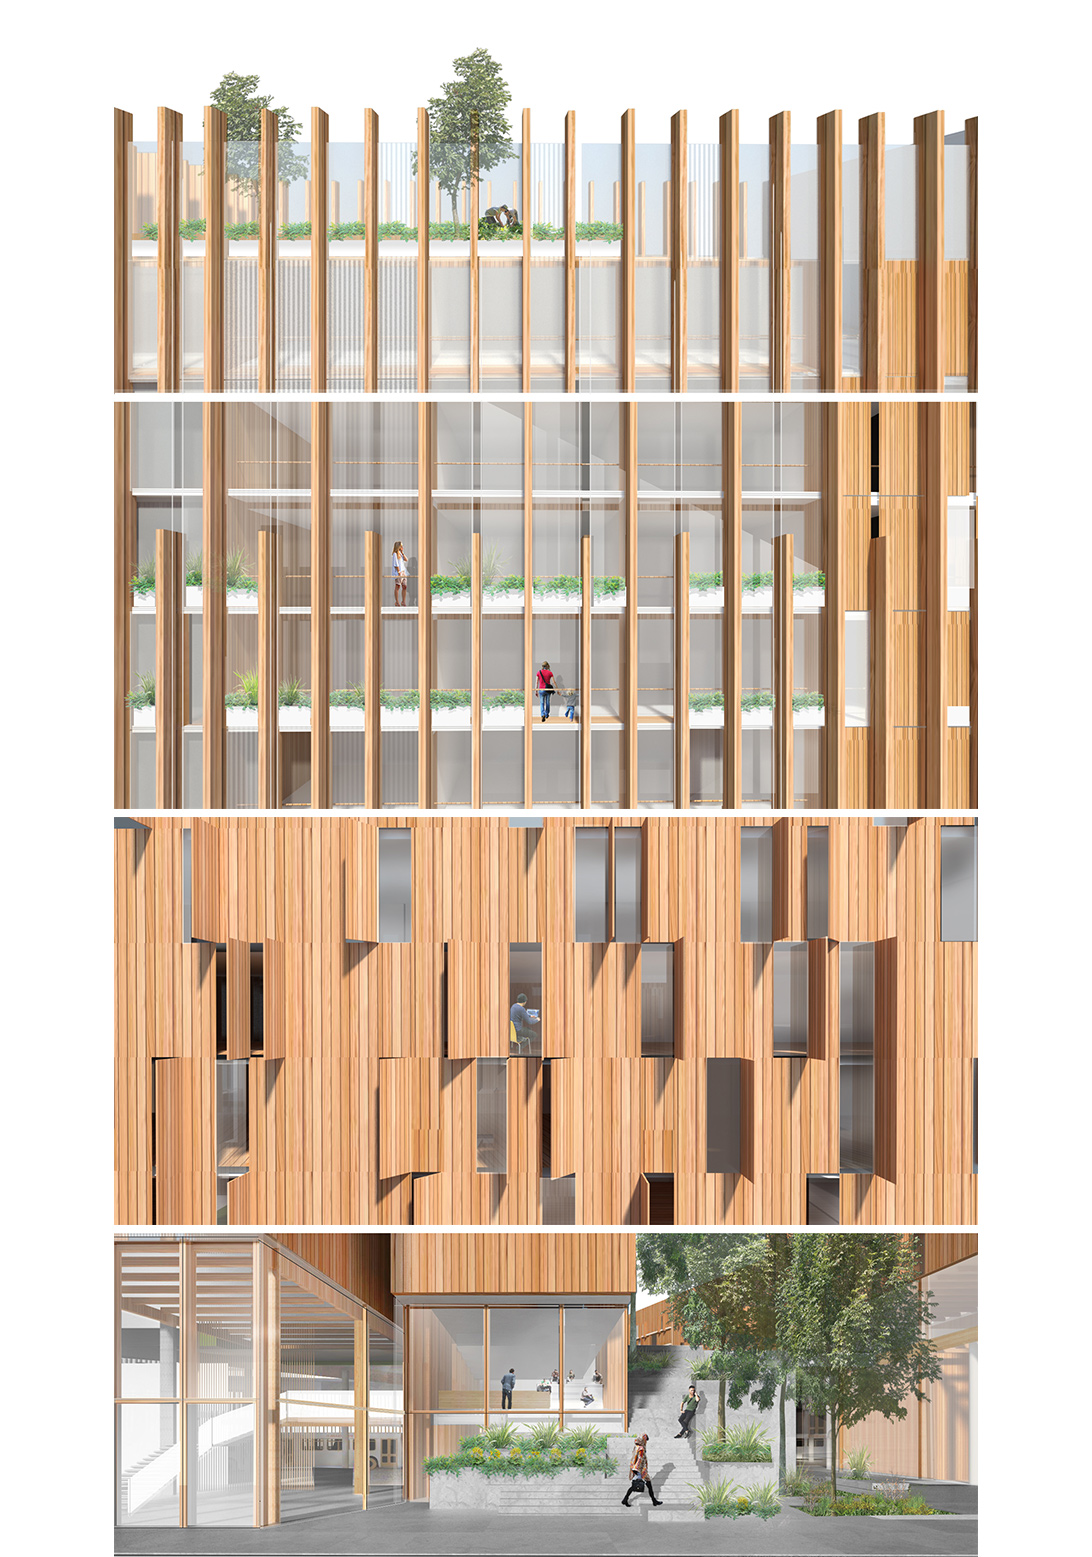 Wood Elevation S : Réinventer paris michael green architecture